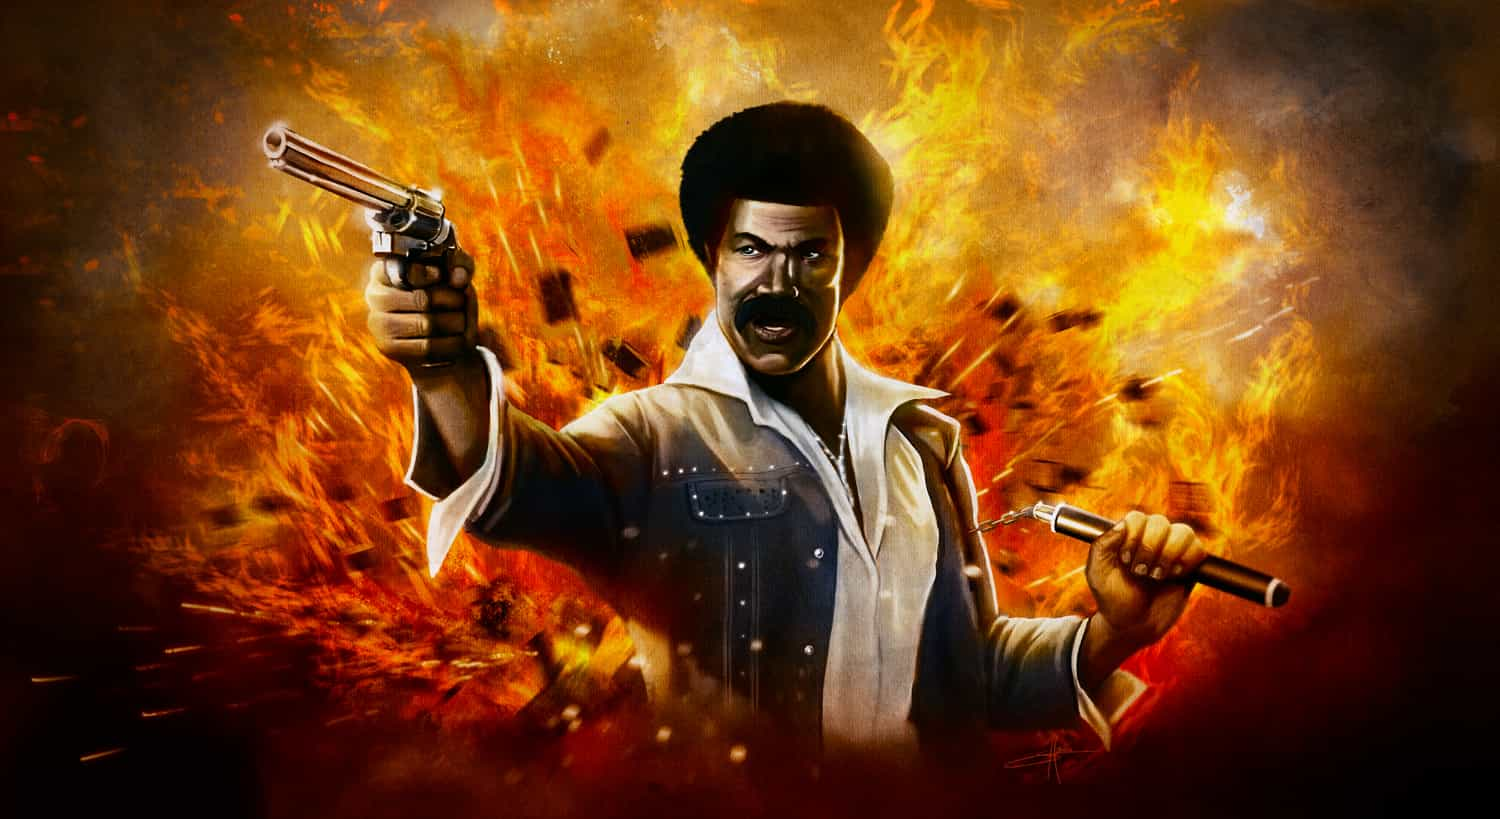 Black Dynamite Movie Wallpapers | WallpapersIn4k.net